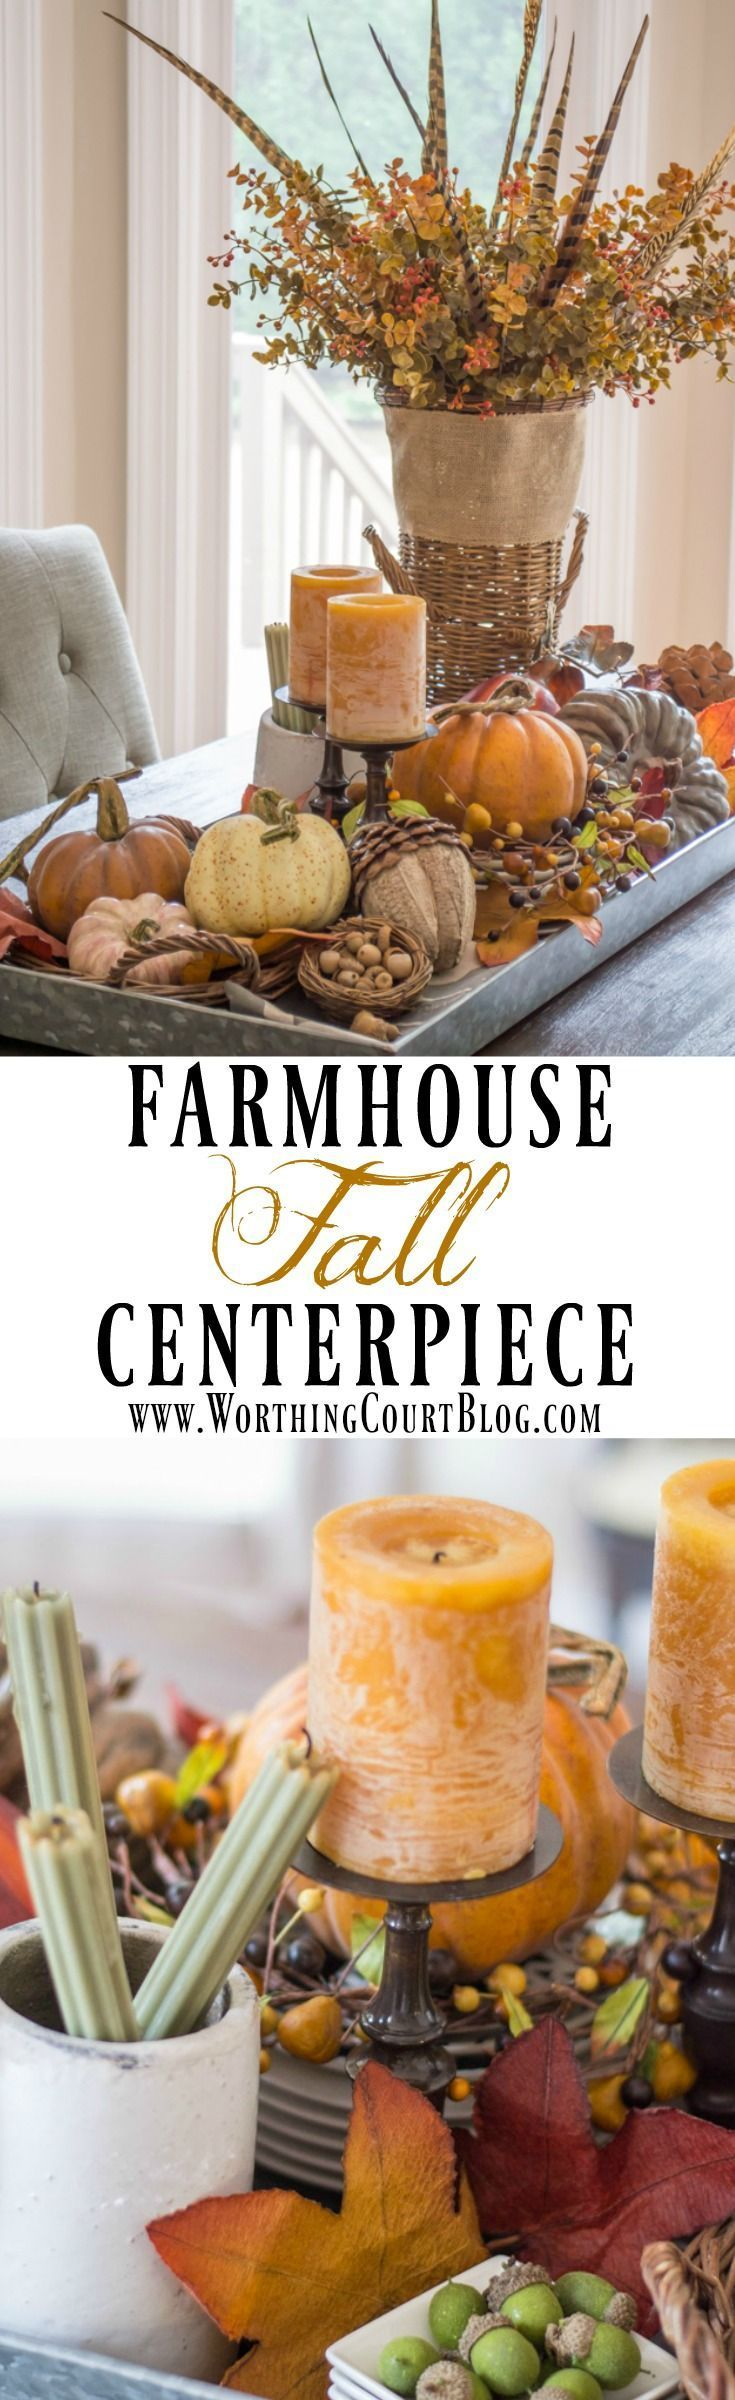 Rustic farmhouse fall centerpiece in a galvanized metal tray brimming with fall…